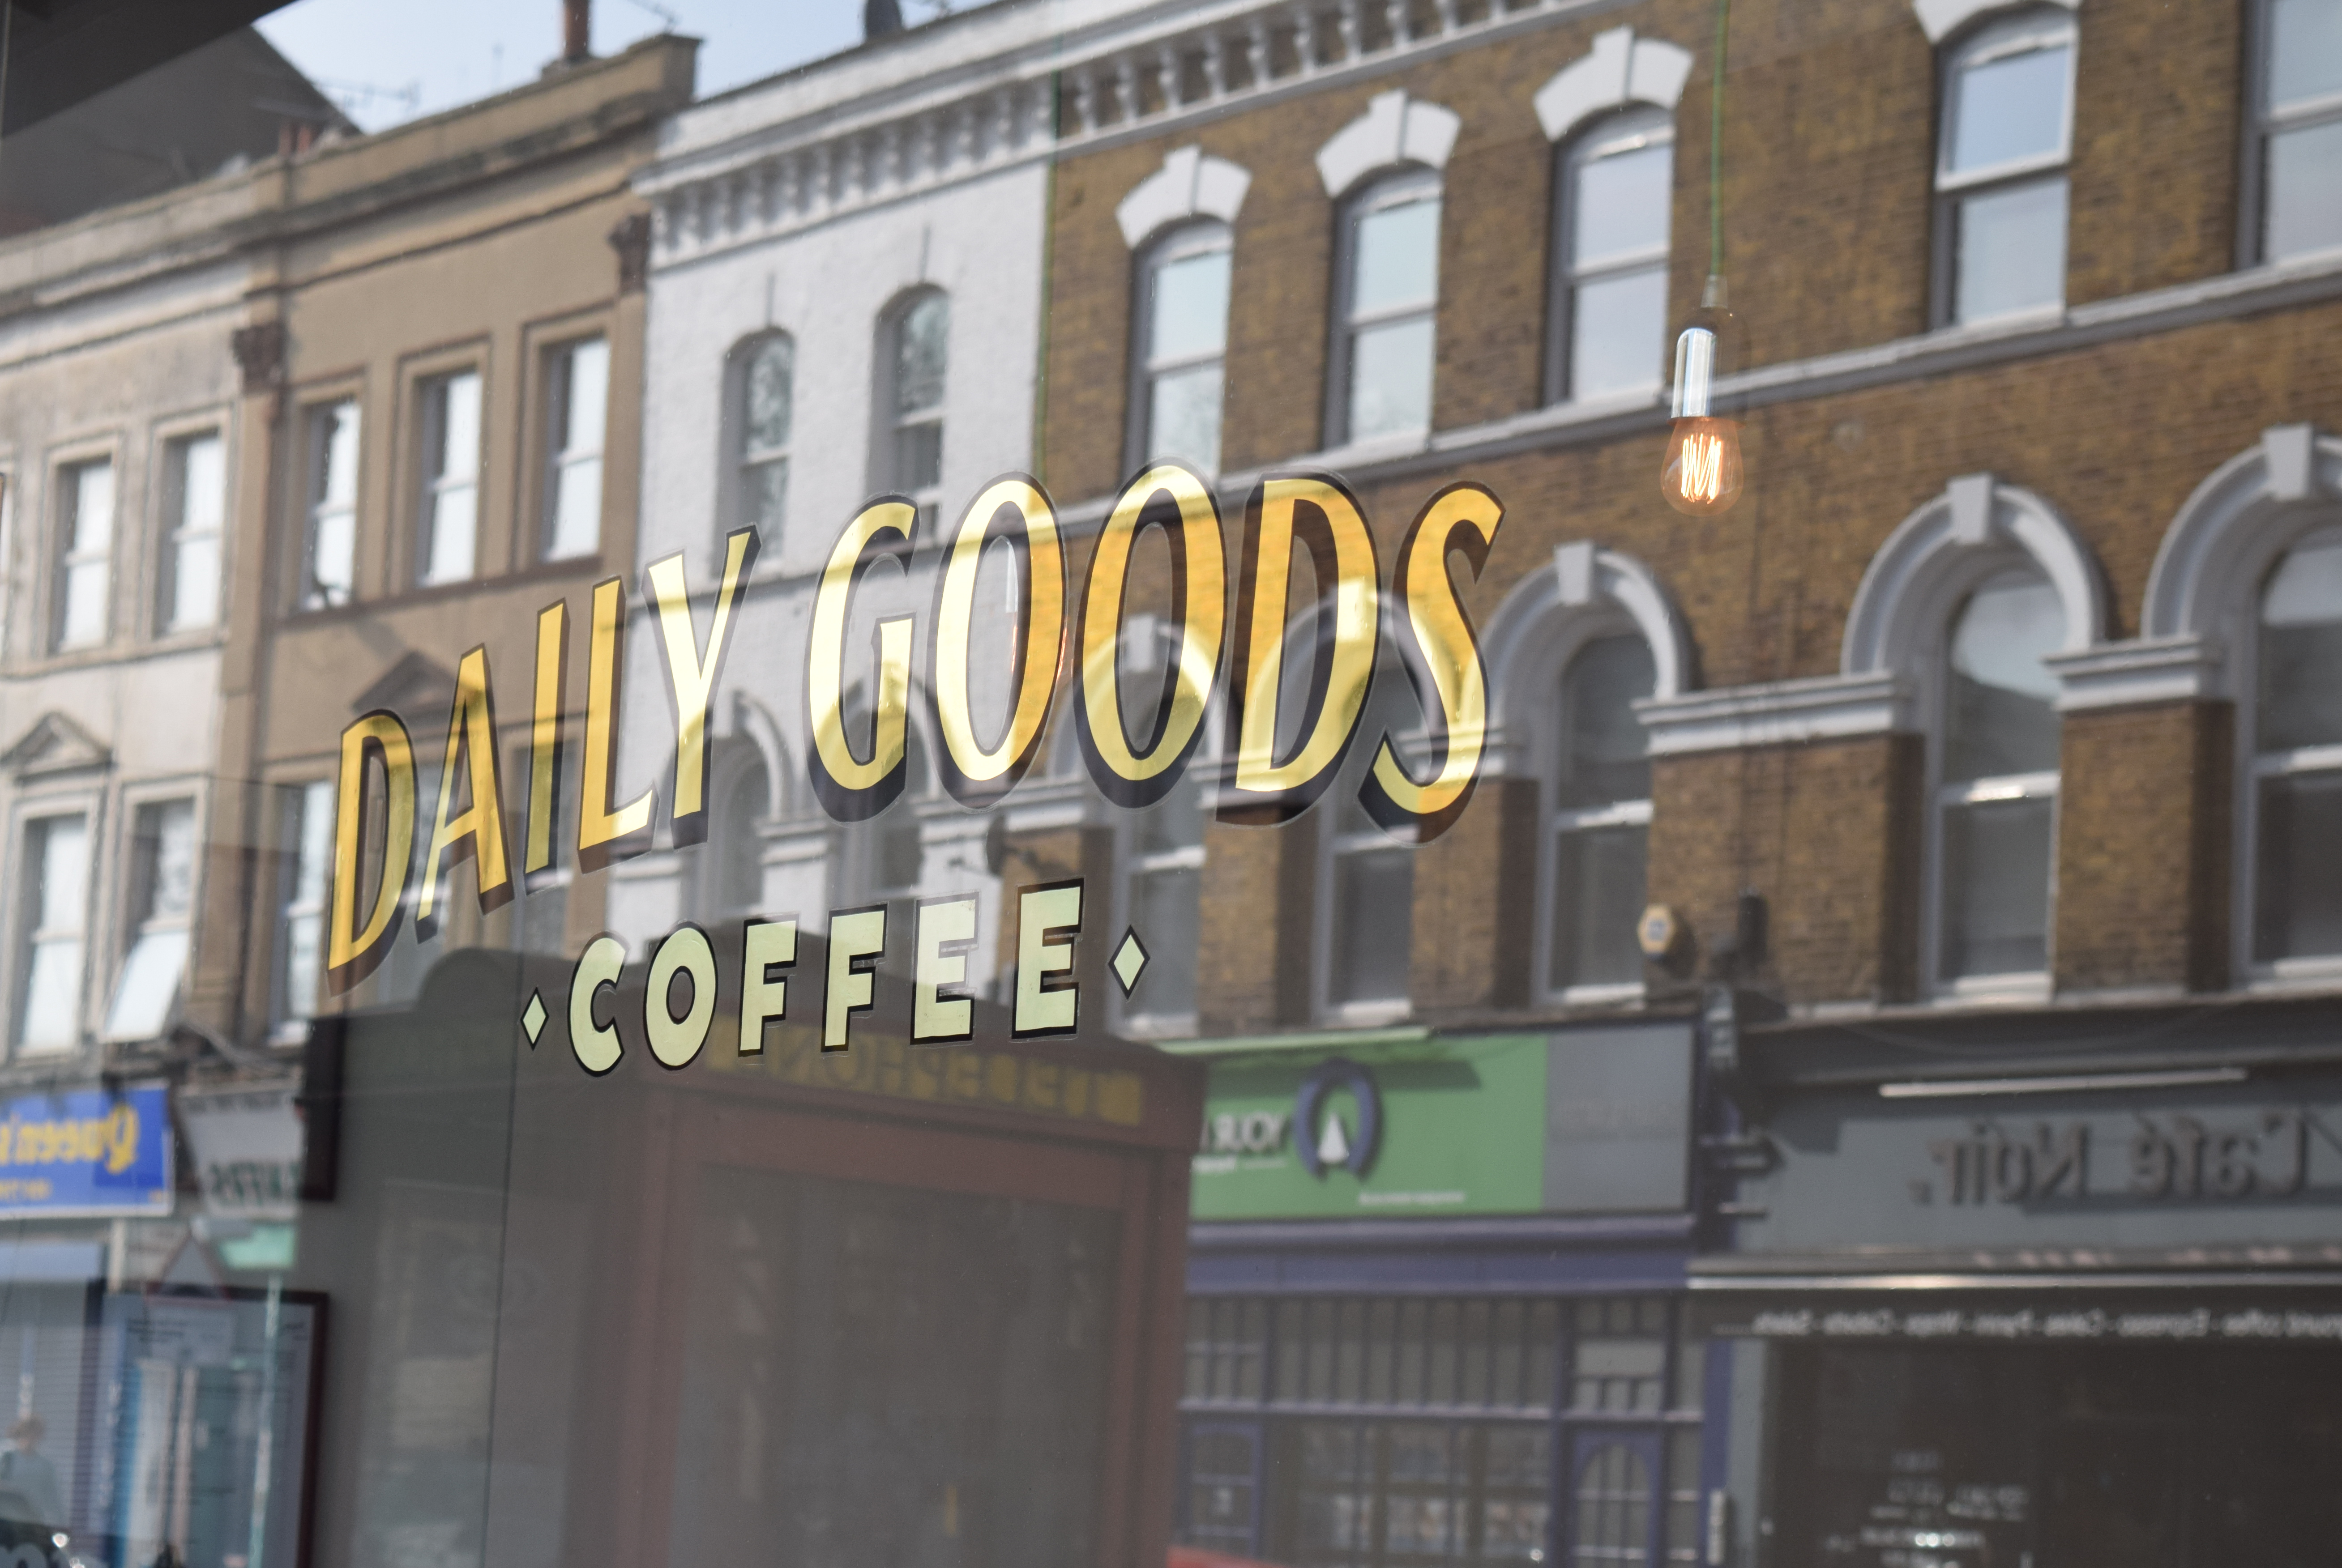 Daily Goods café in Camberwell